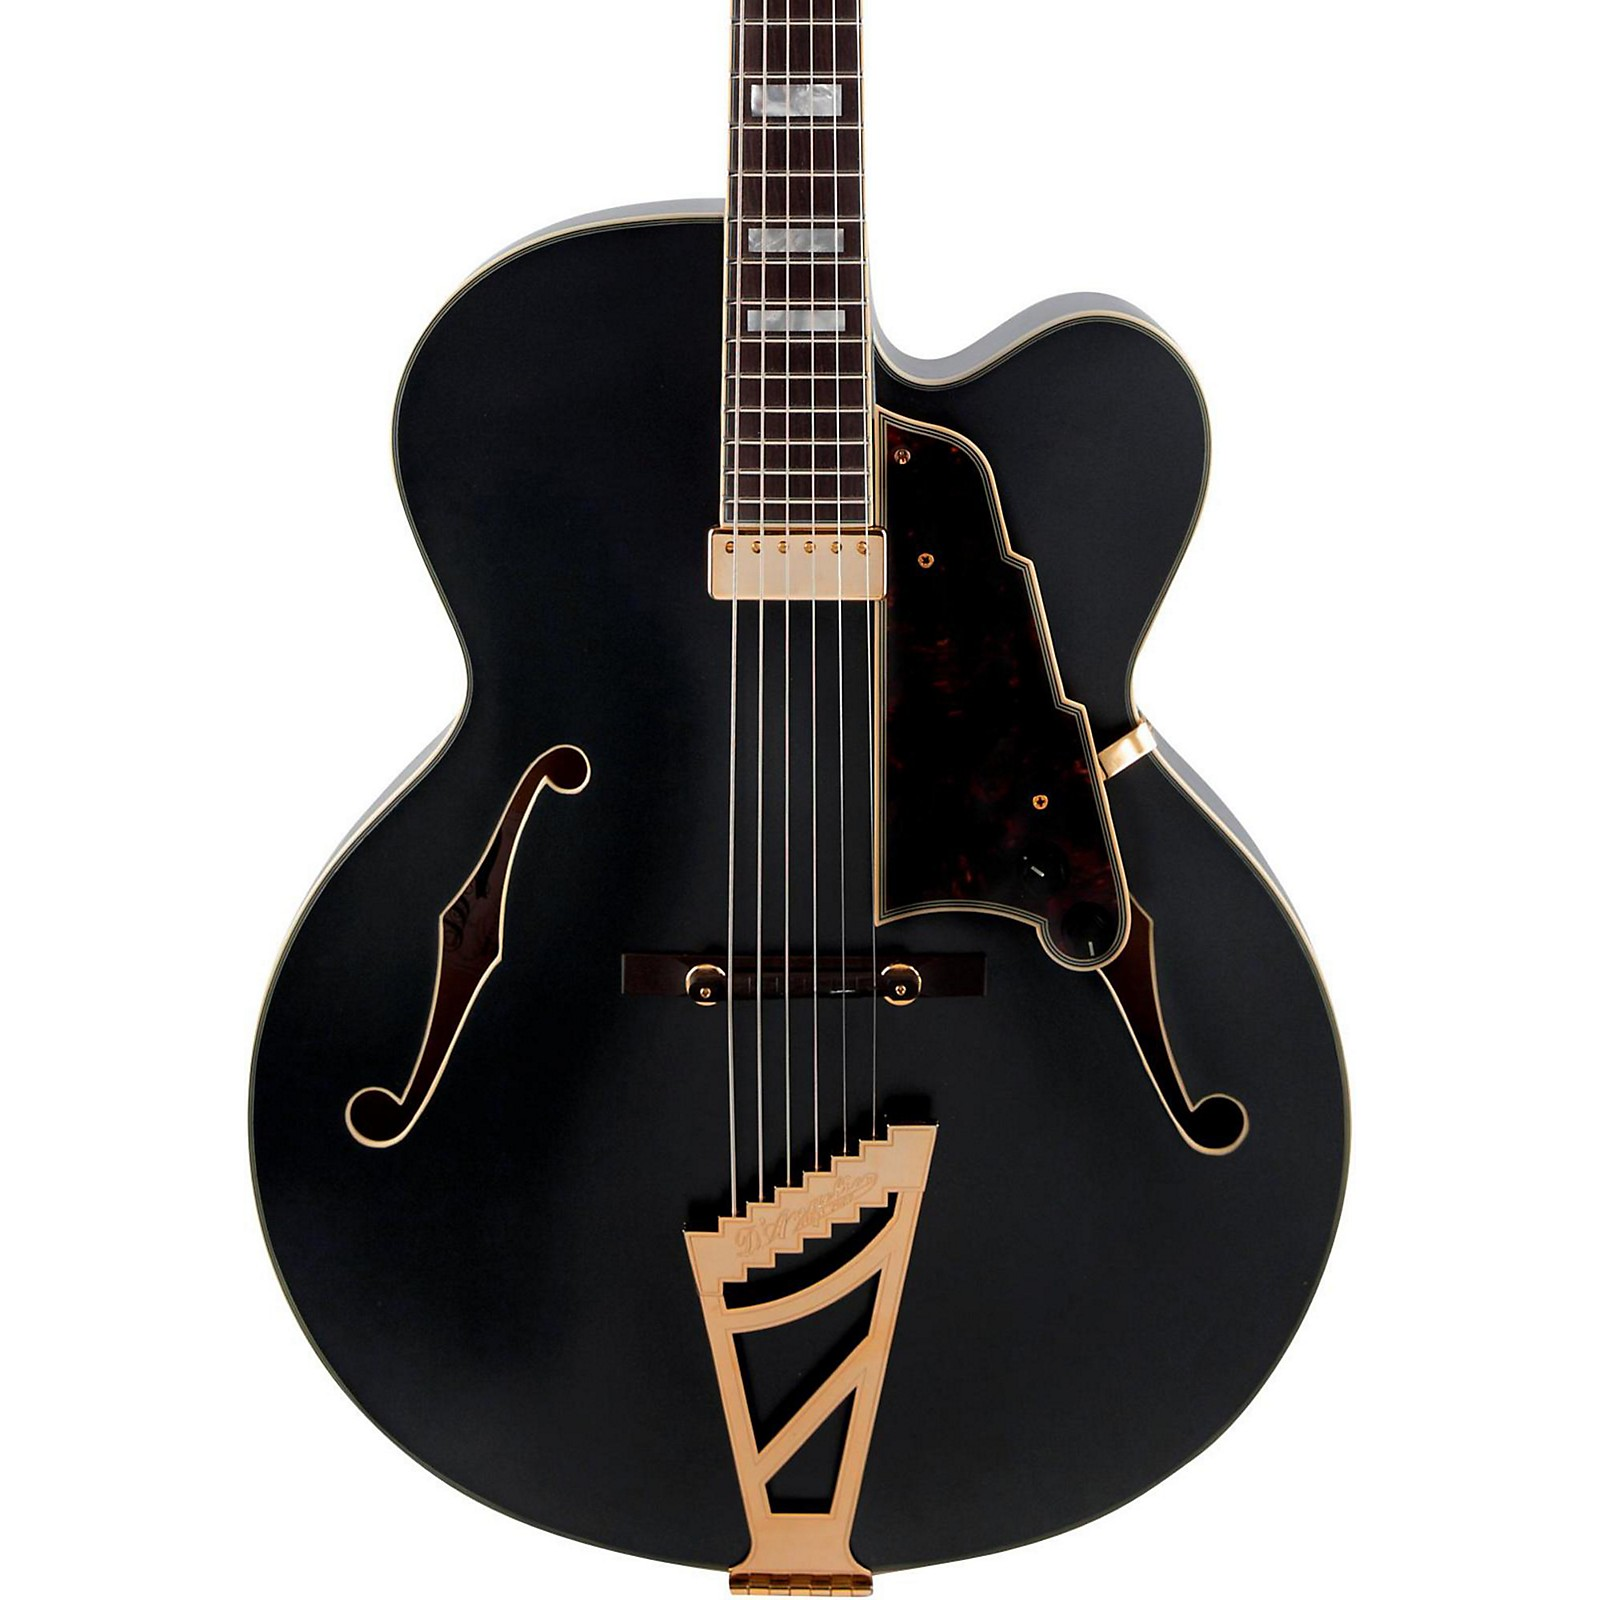 Open Box D'Angelico Deluxe Series EXL-1 Hollowbody Electric Guitar with Seymour Duncan Floating Pickup and Stairstep Tailpiece